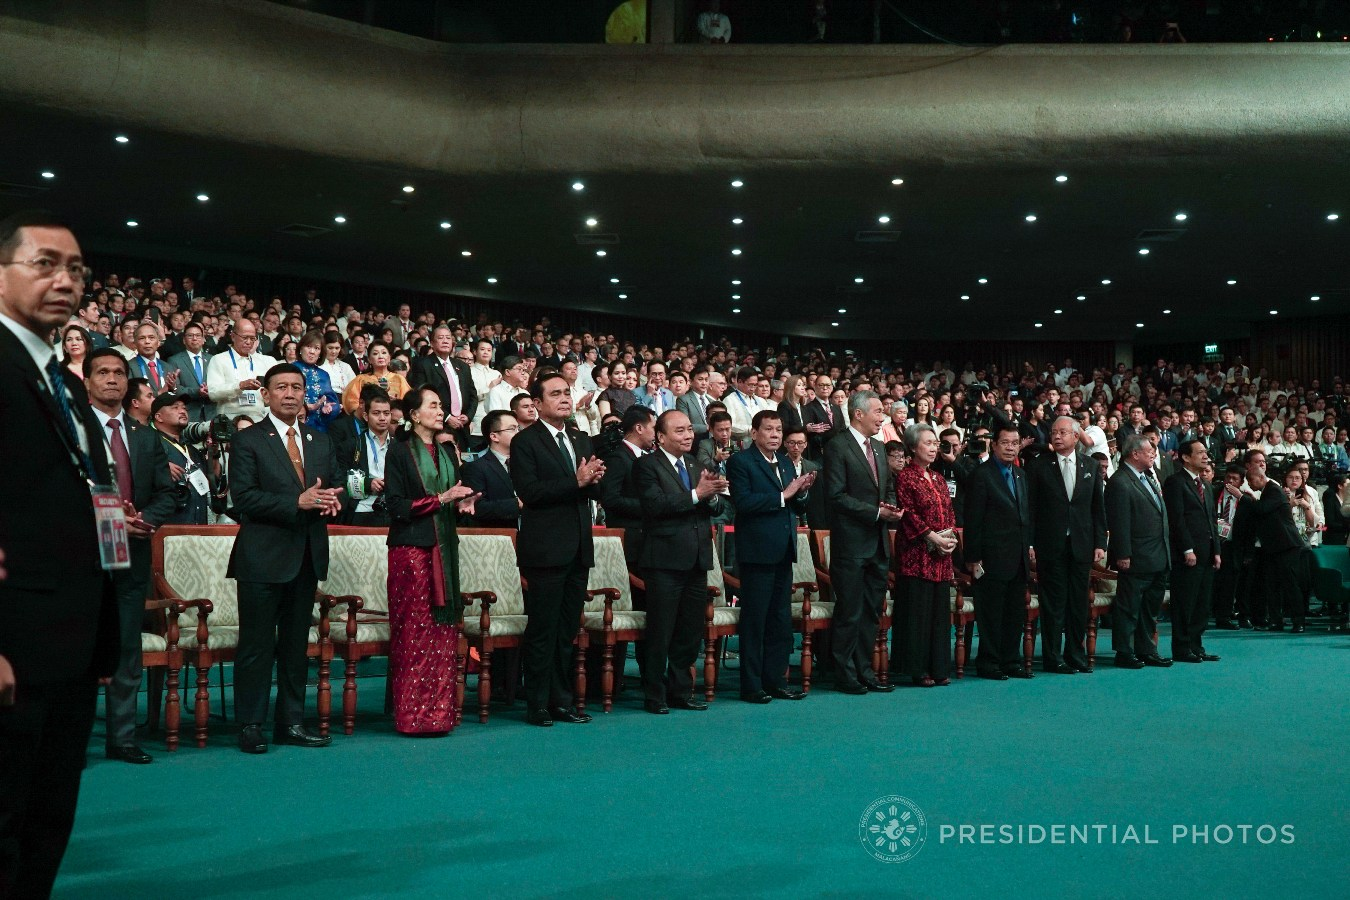 President Rodrigo Roa Duterte and leaders and representatives of the Association of Southeast Asian Nations (ASEAN) member states applaud as they witness the program during the closing ceremony of 31st ASEAN Summit and Related Summits at the Philippine International Convention Center on November 14, 2017. KING RODRIGUEZ/PRESIDENTIAL PHOTO